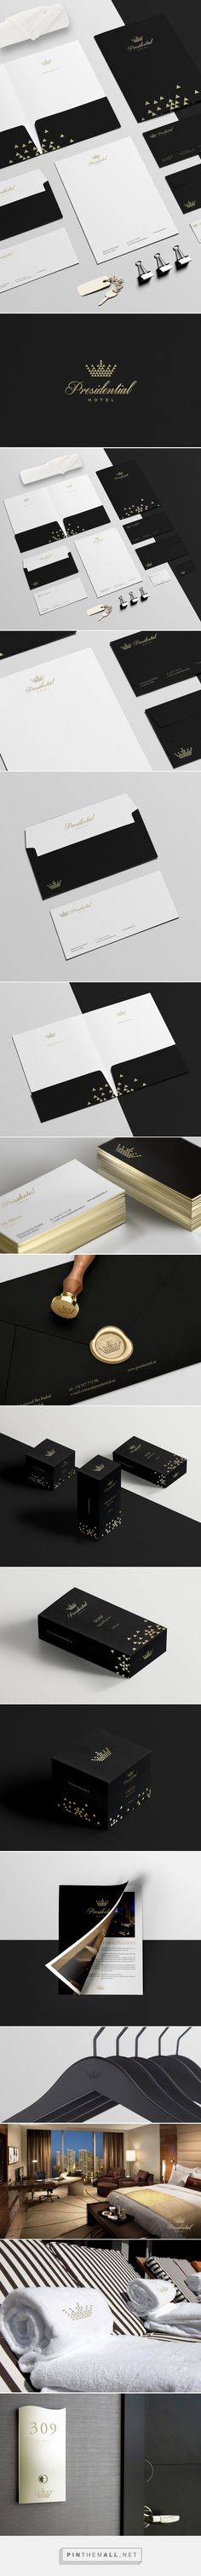 Presidential Hotel on Behance | Fivestar Branding – Design and Branding Agency & Inspiration Gallery